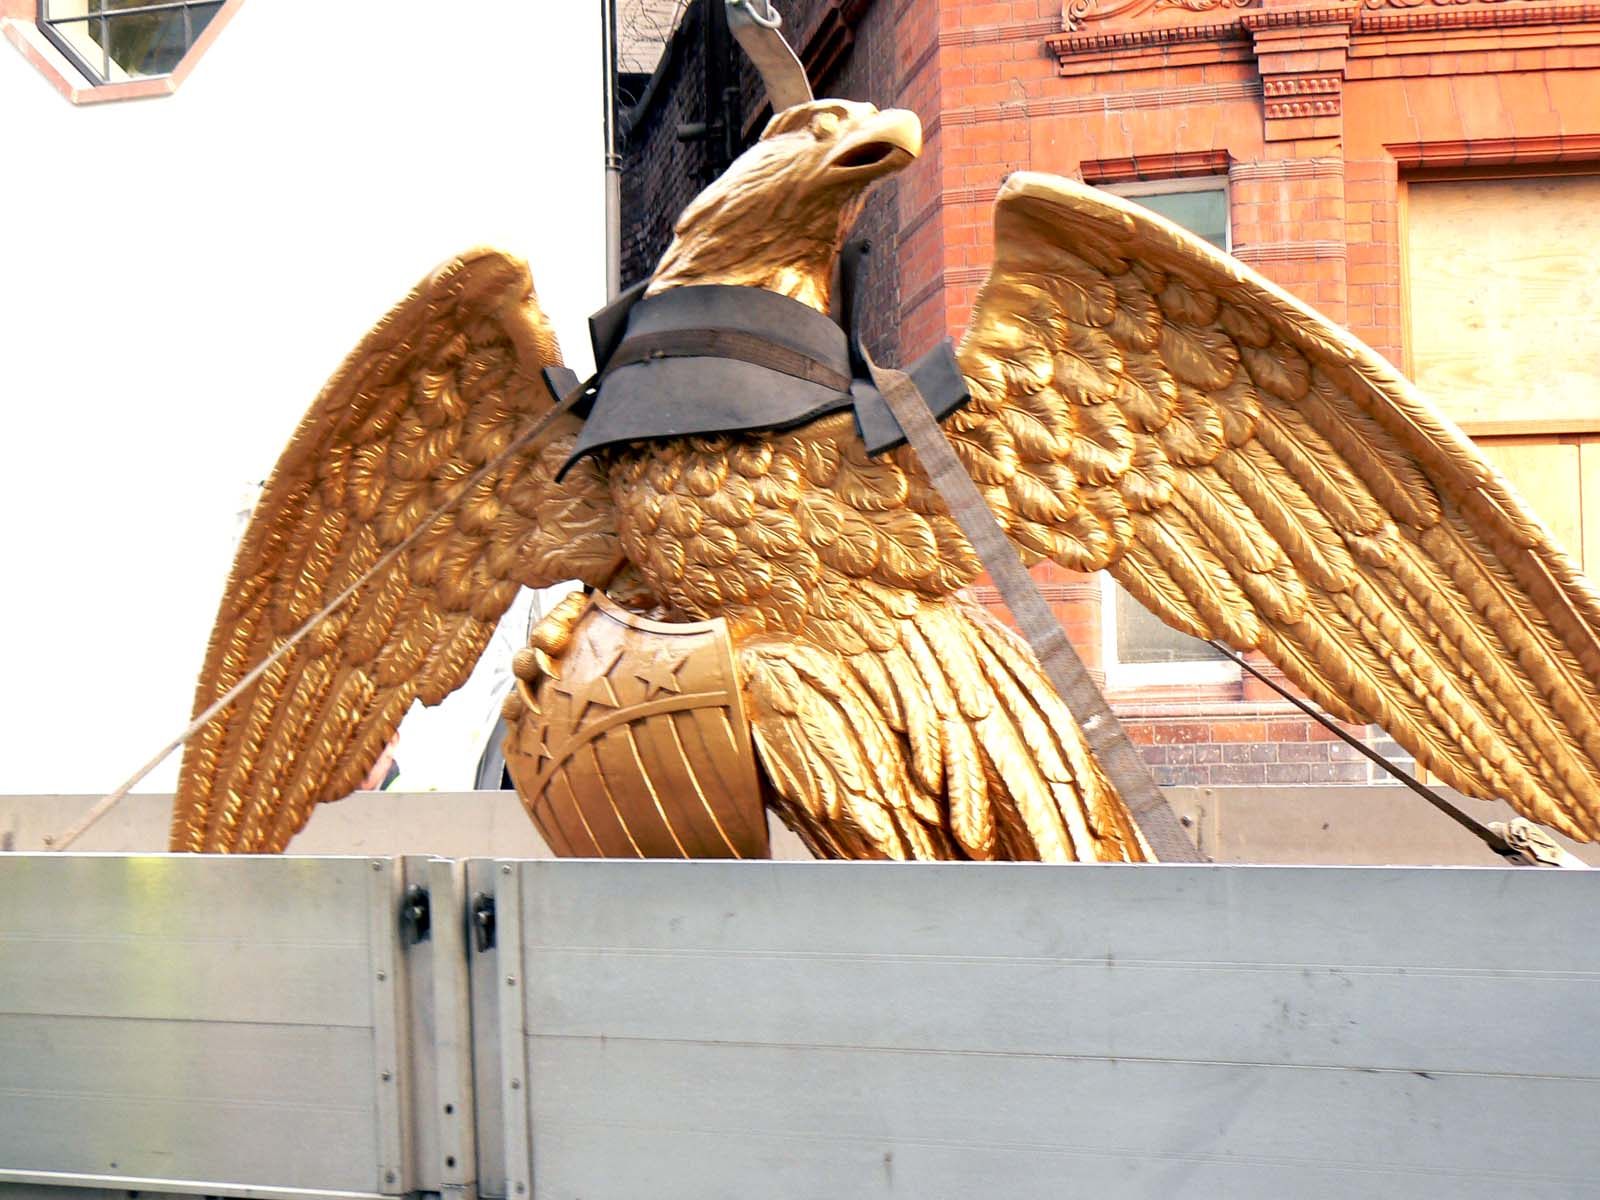 American eagle ready to be lifted to the shelf. (281508 bytes)